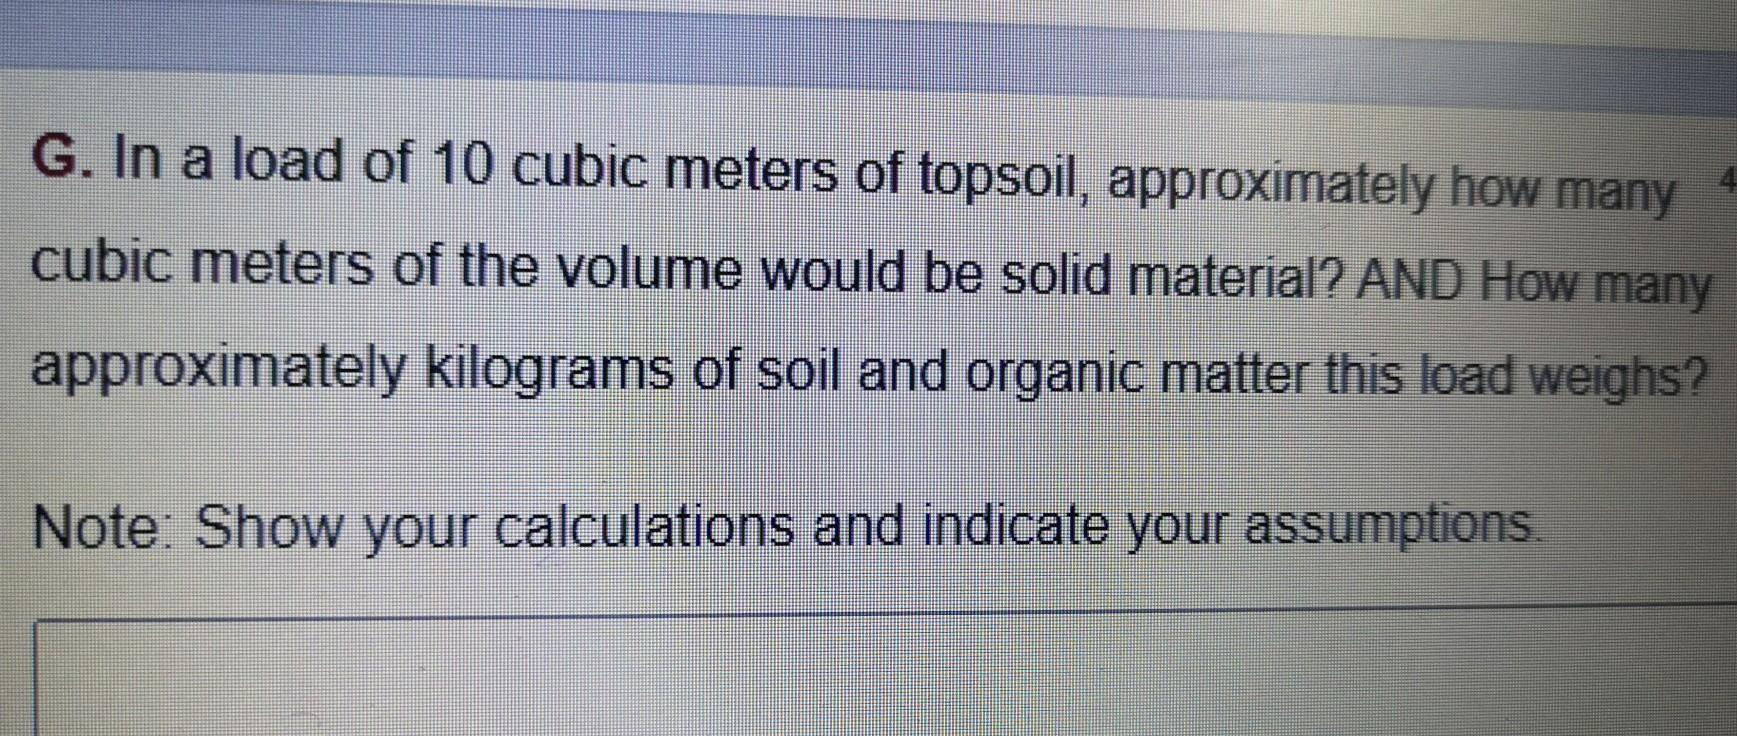 G. In a load of 10 cubic meters of topsoil, approximately how many cubic meters of the volume would be solid material? AND Ho